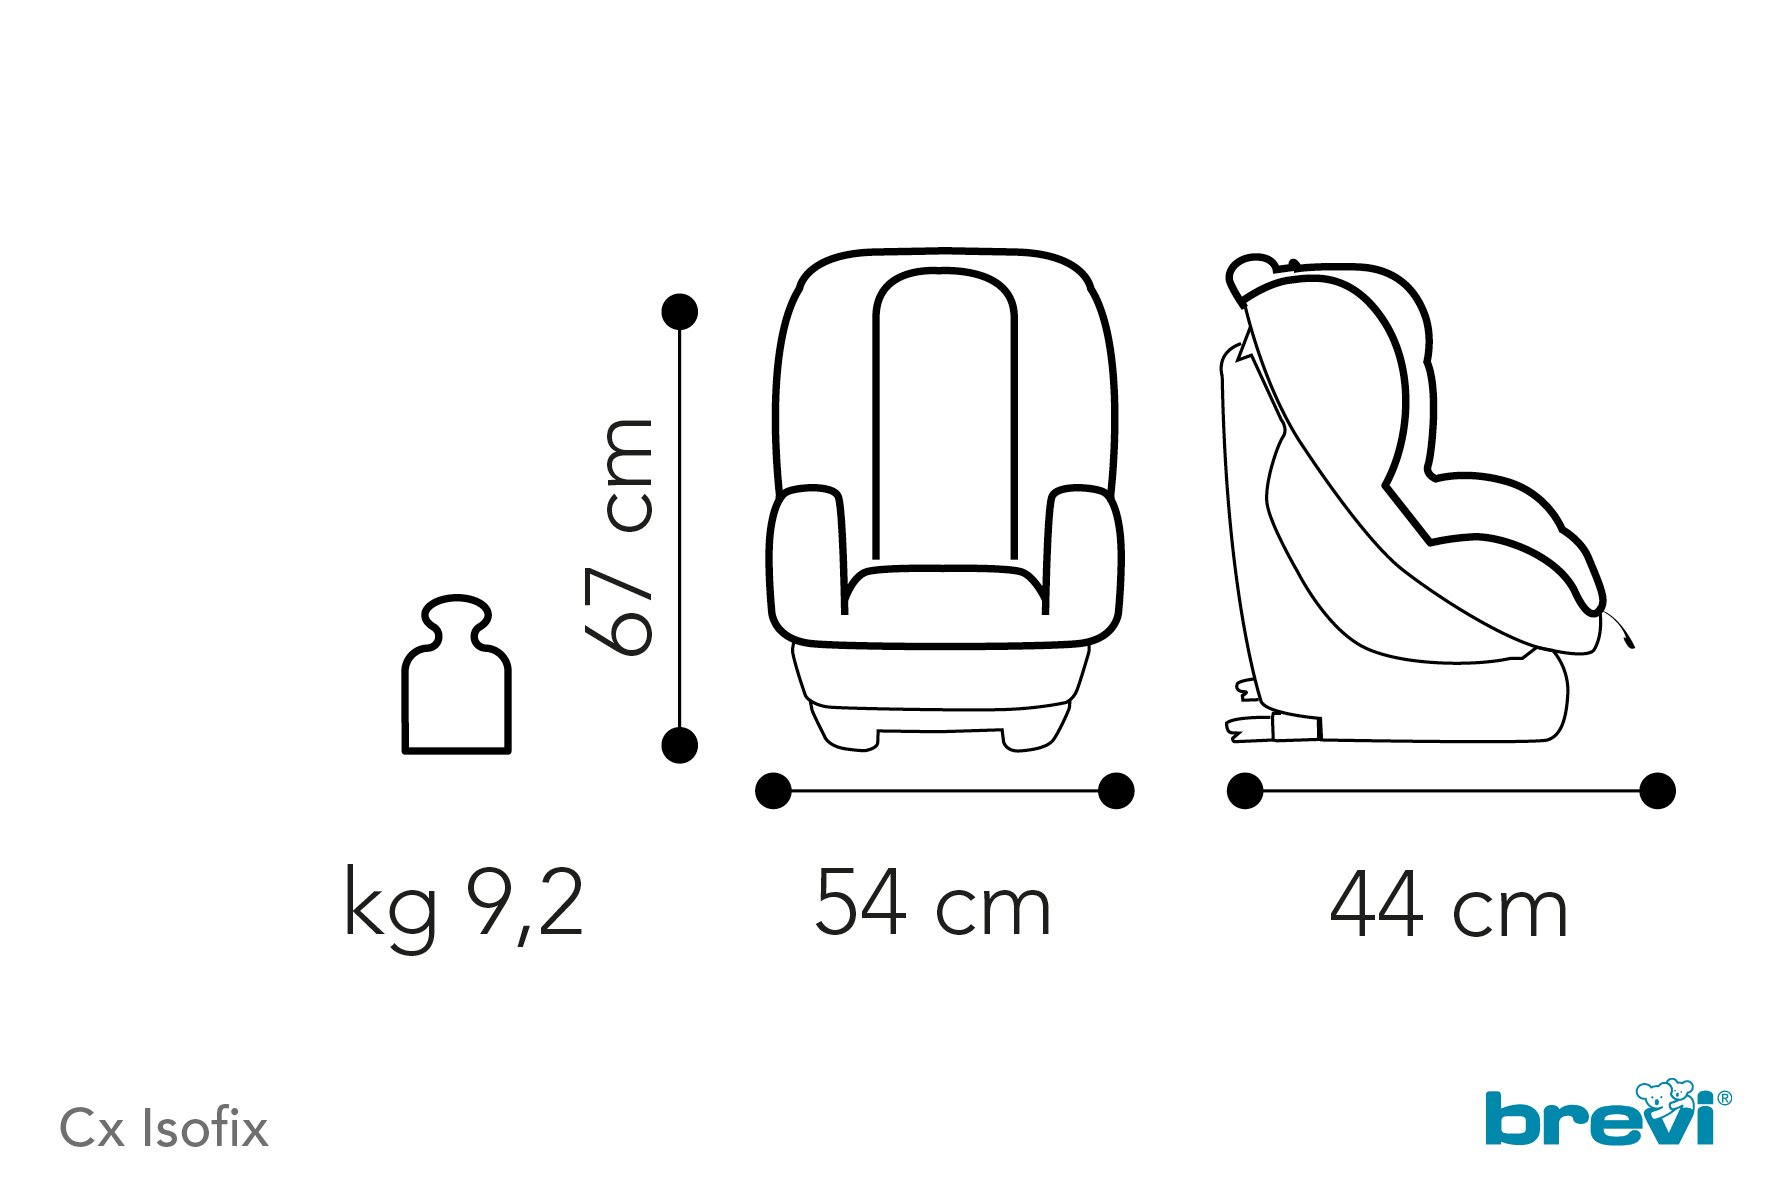 B00LITRXMK besides Height Chart further Brevi Child Car Seat Cx Isofix Tt Brown 2018 furthermore 1046344373 likewise Bob Single Infant Car Seat Adapter For 2016 Peg. on peg perego car seat